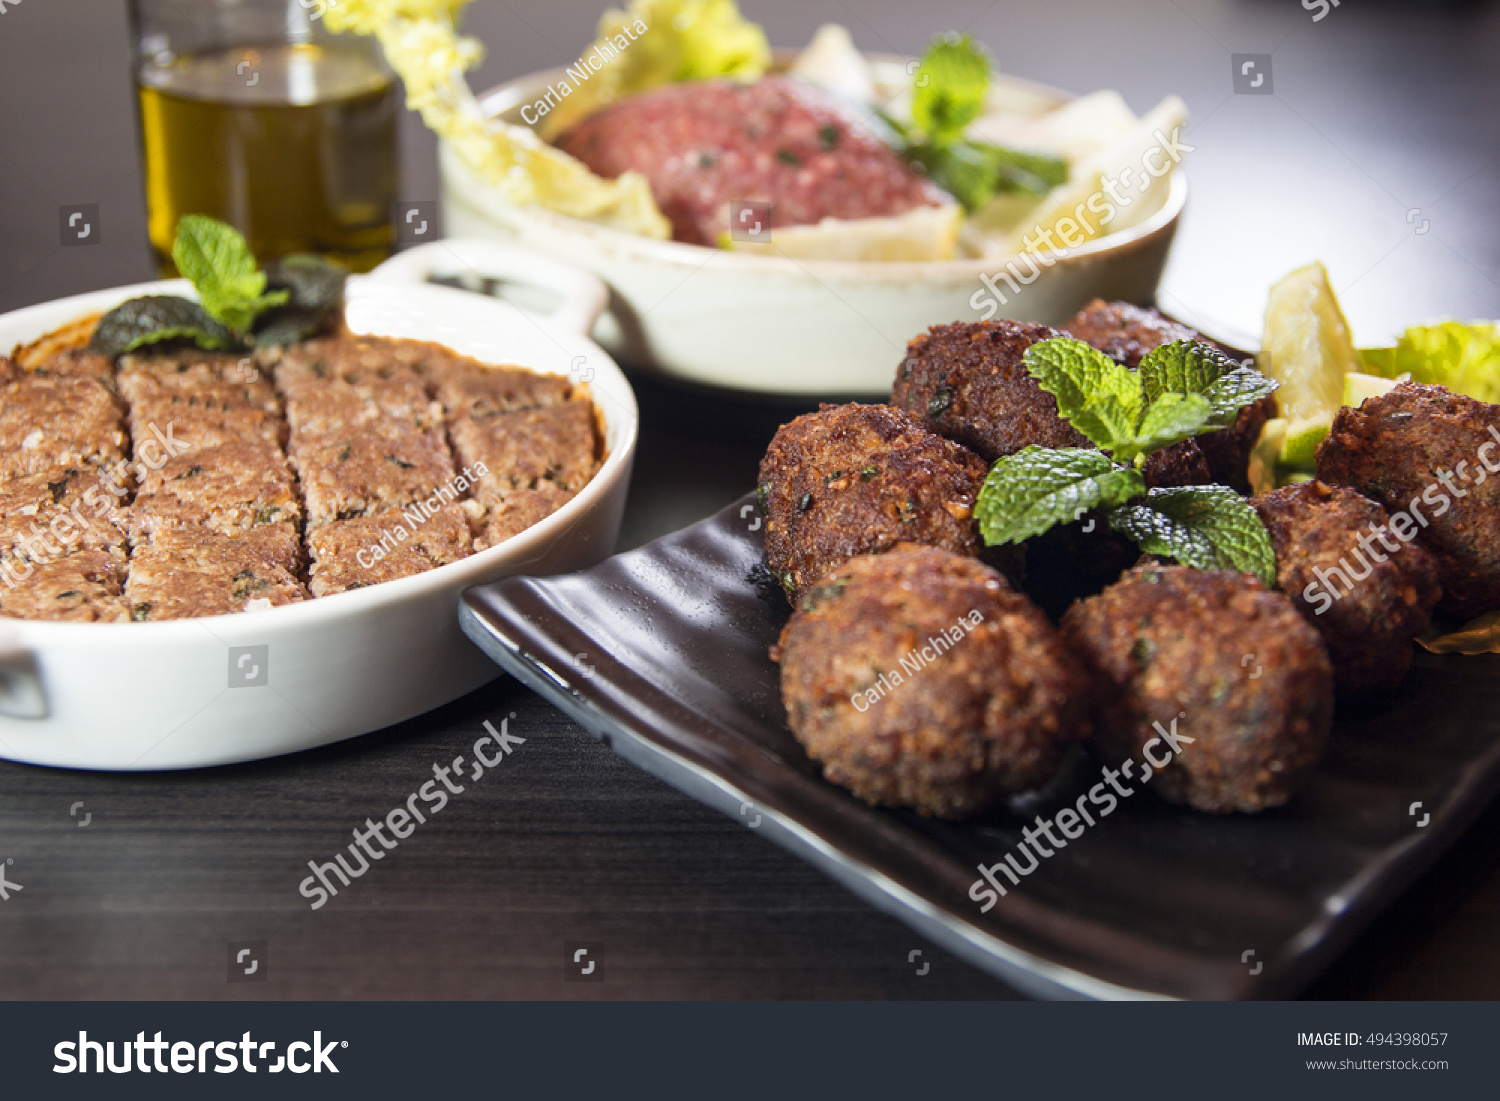 Kibbeh lebanese food made bulgur onions stock photo edit now kibbeh lebanese food made of bulgur onions and lamb or beef spices and peppermint forumfinder Image collections